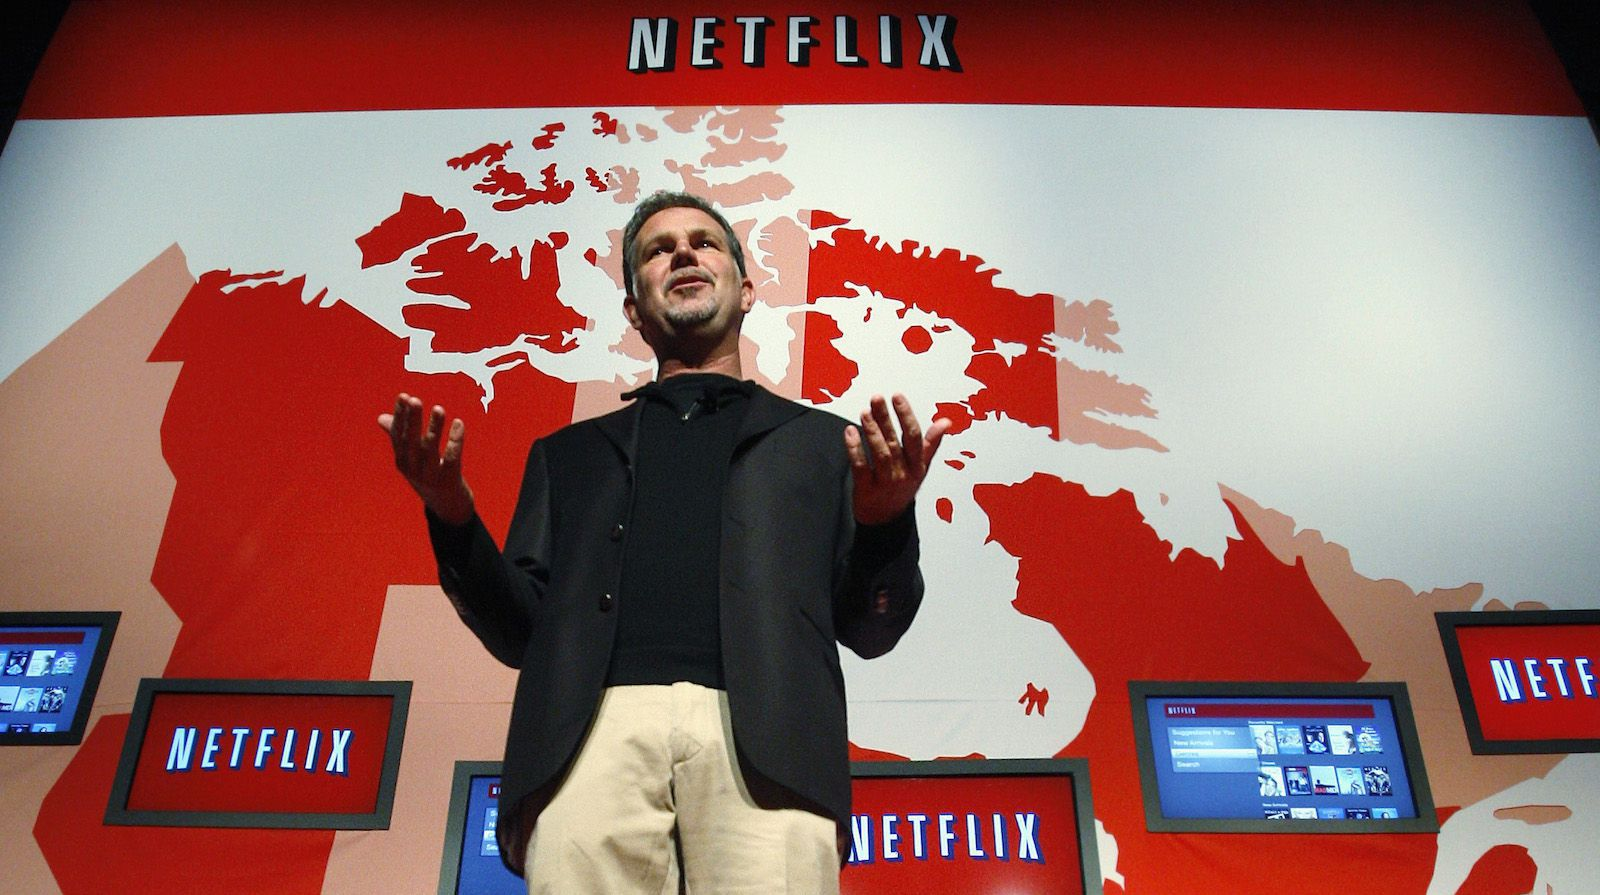 Pricing, just like Netflix content, can vary wildly around the world.